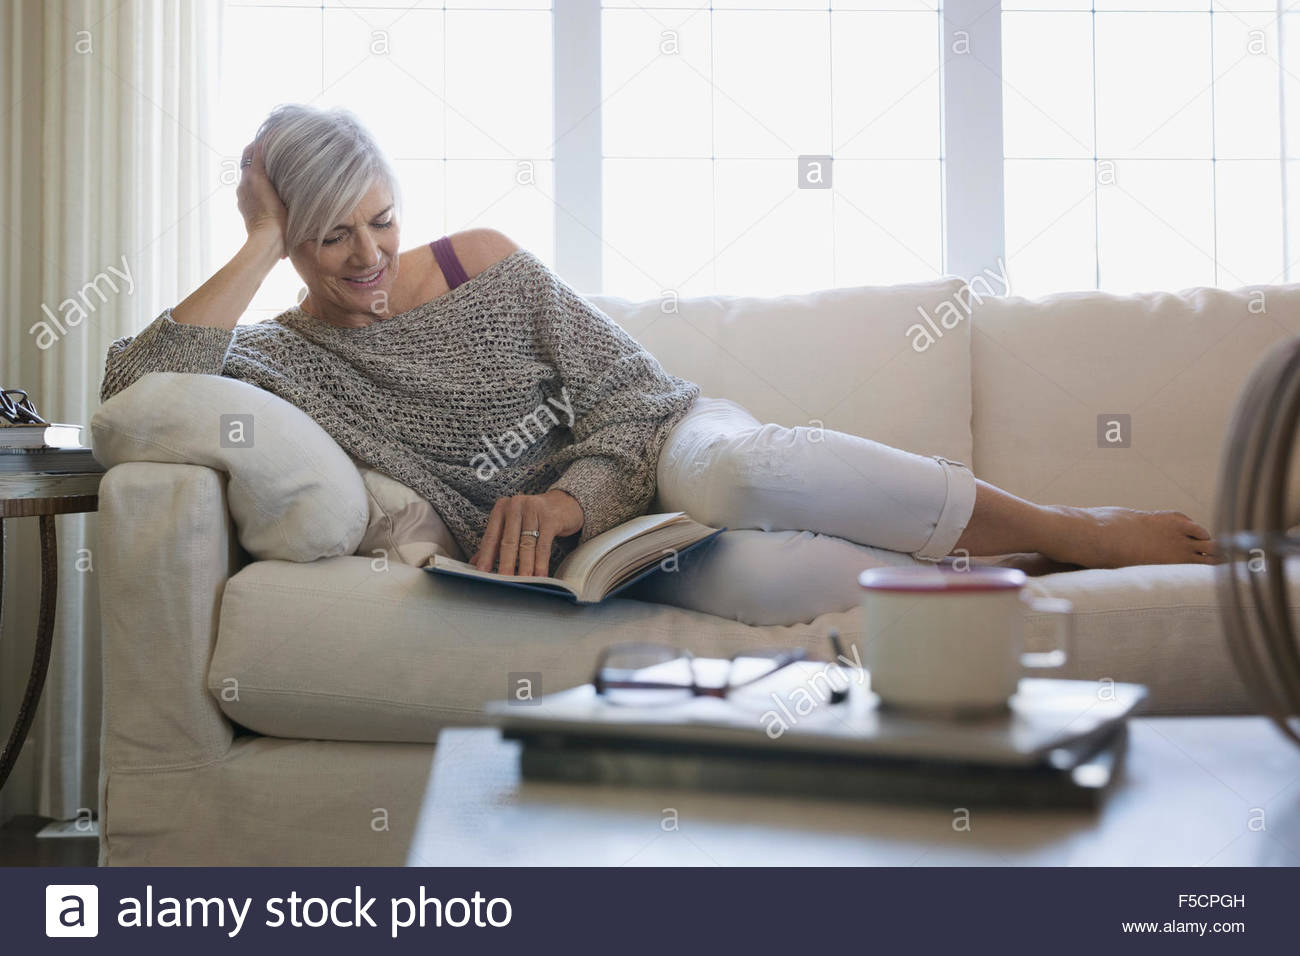 6cb974d2d4f8 Woman reading book and relaxing on sofa Stock Photo  89406257 - Alamy